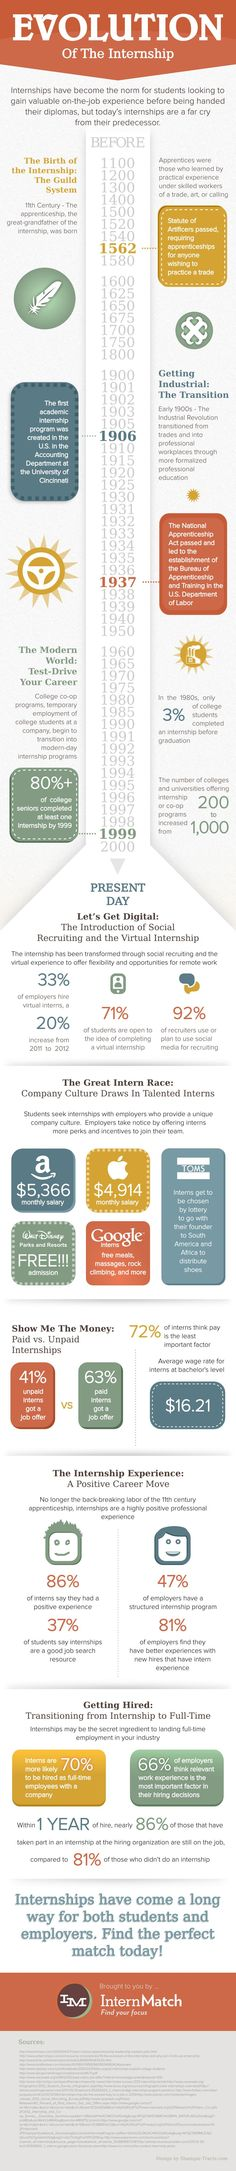 Did you know that an internship will make you 70% more likely to get hired full-time by a company than candidates with no experience at that company? | #intern #career #infographic